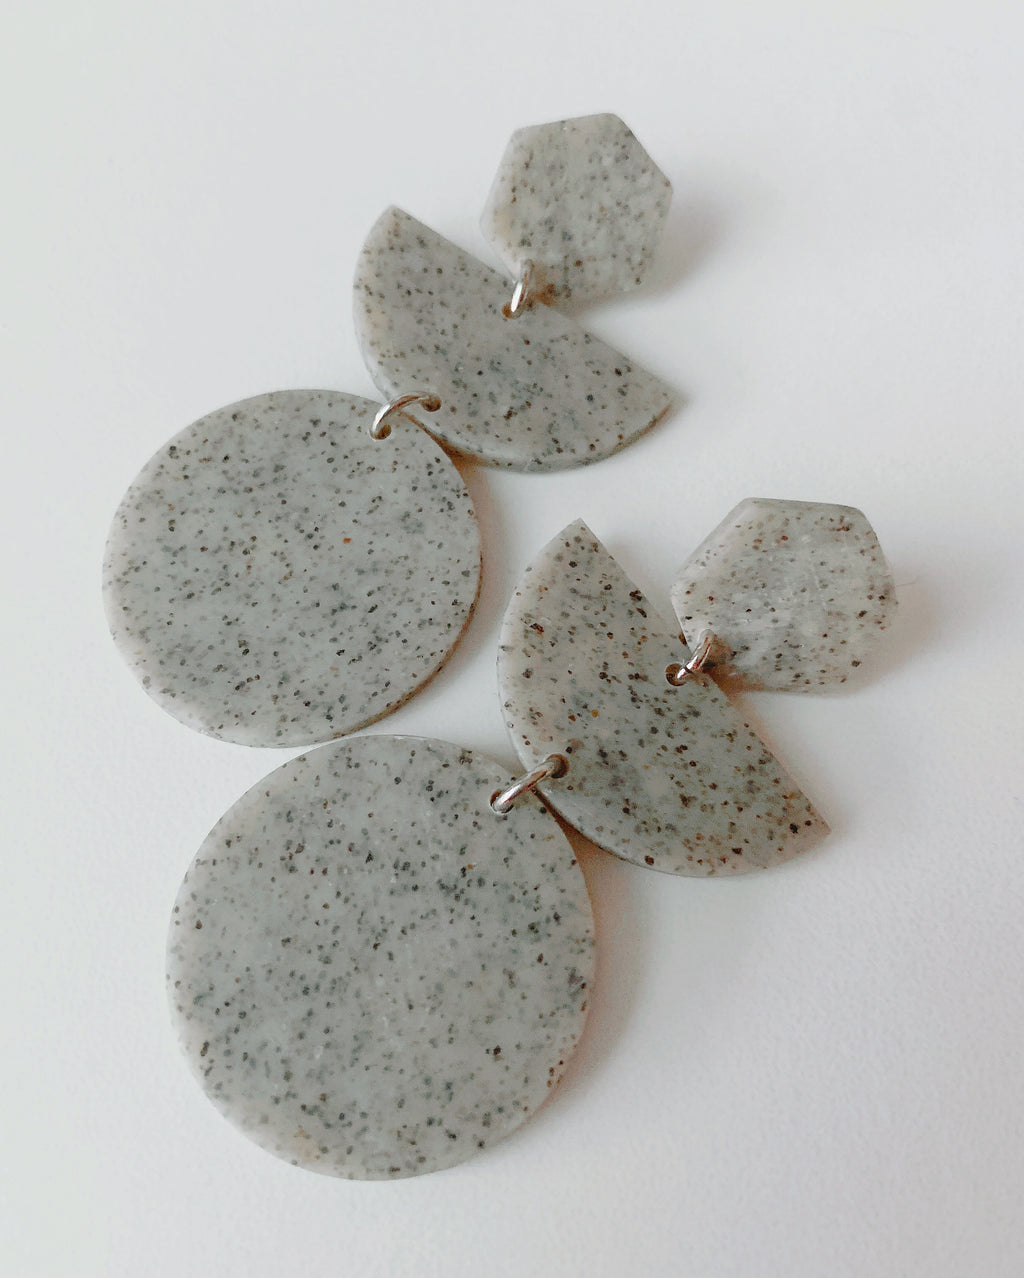 Handmade Concrete-Look Clay Earrings